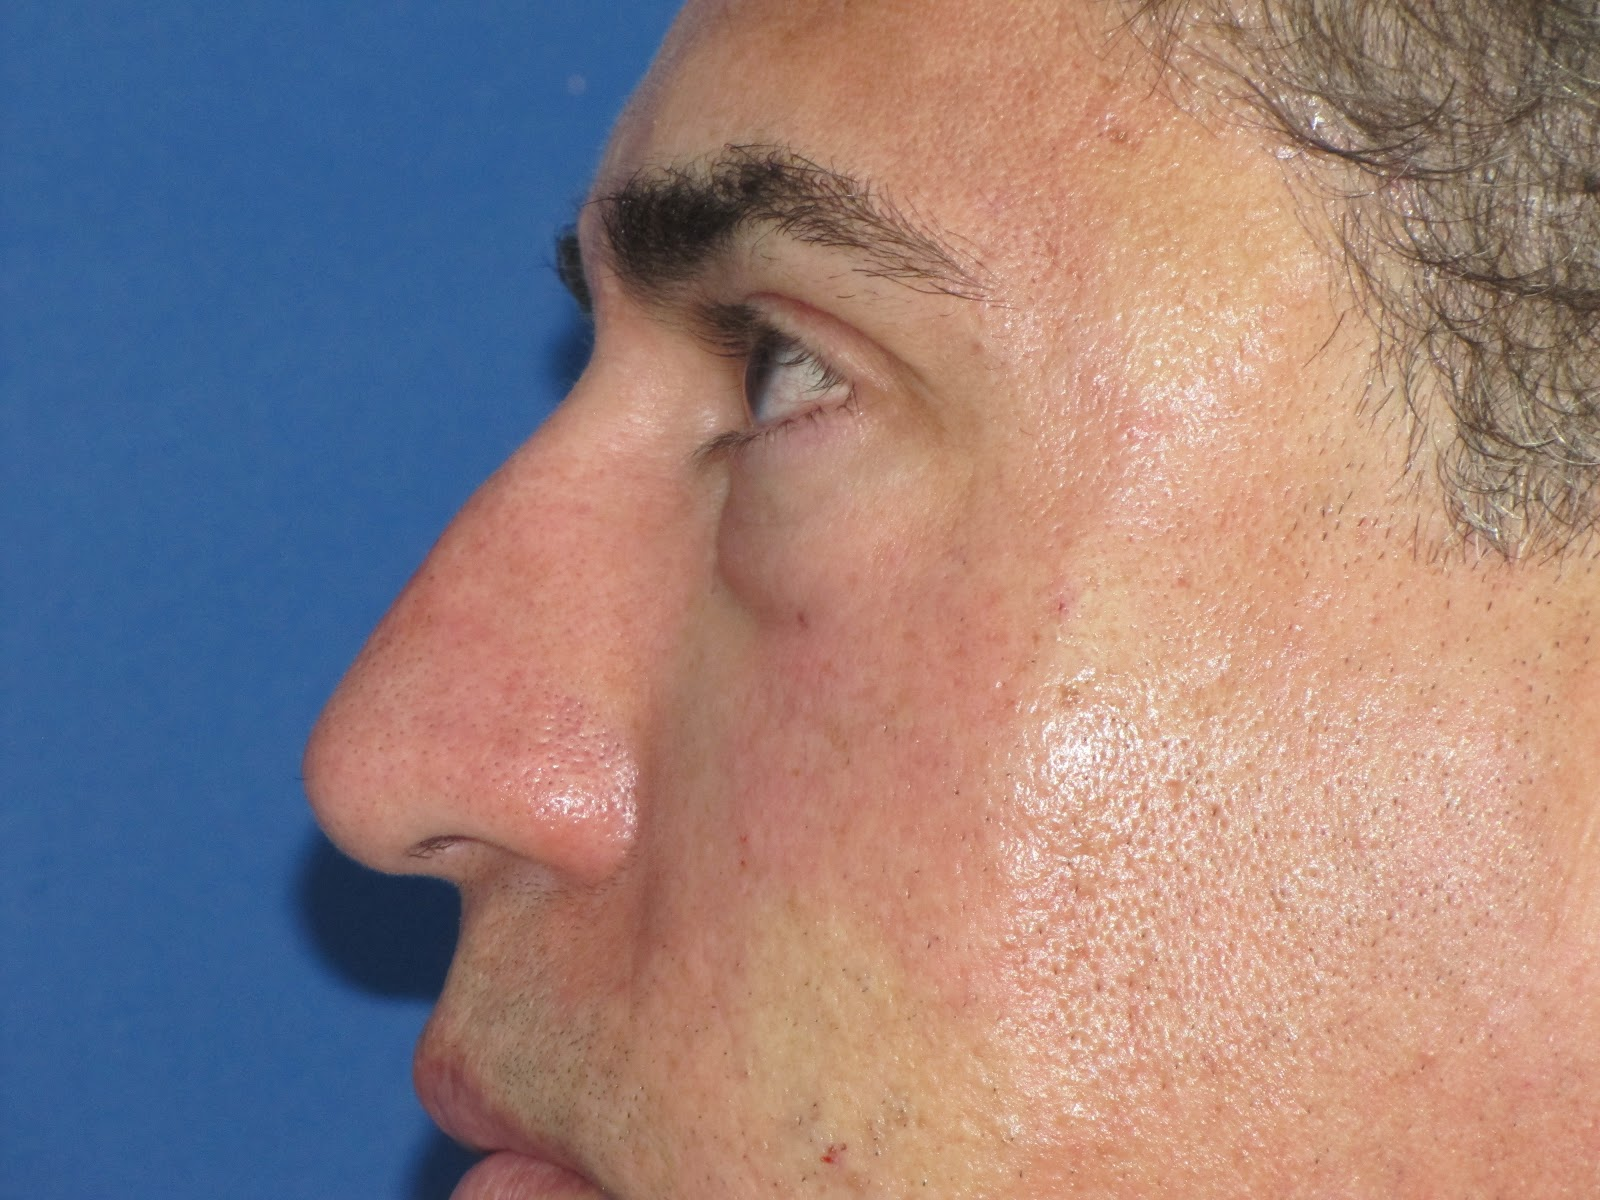 Non-Surgical Rhinoplasty (Nosejob): quick and painless